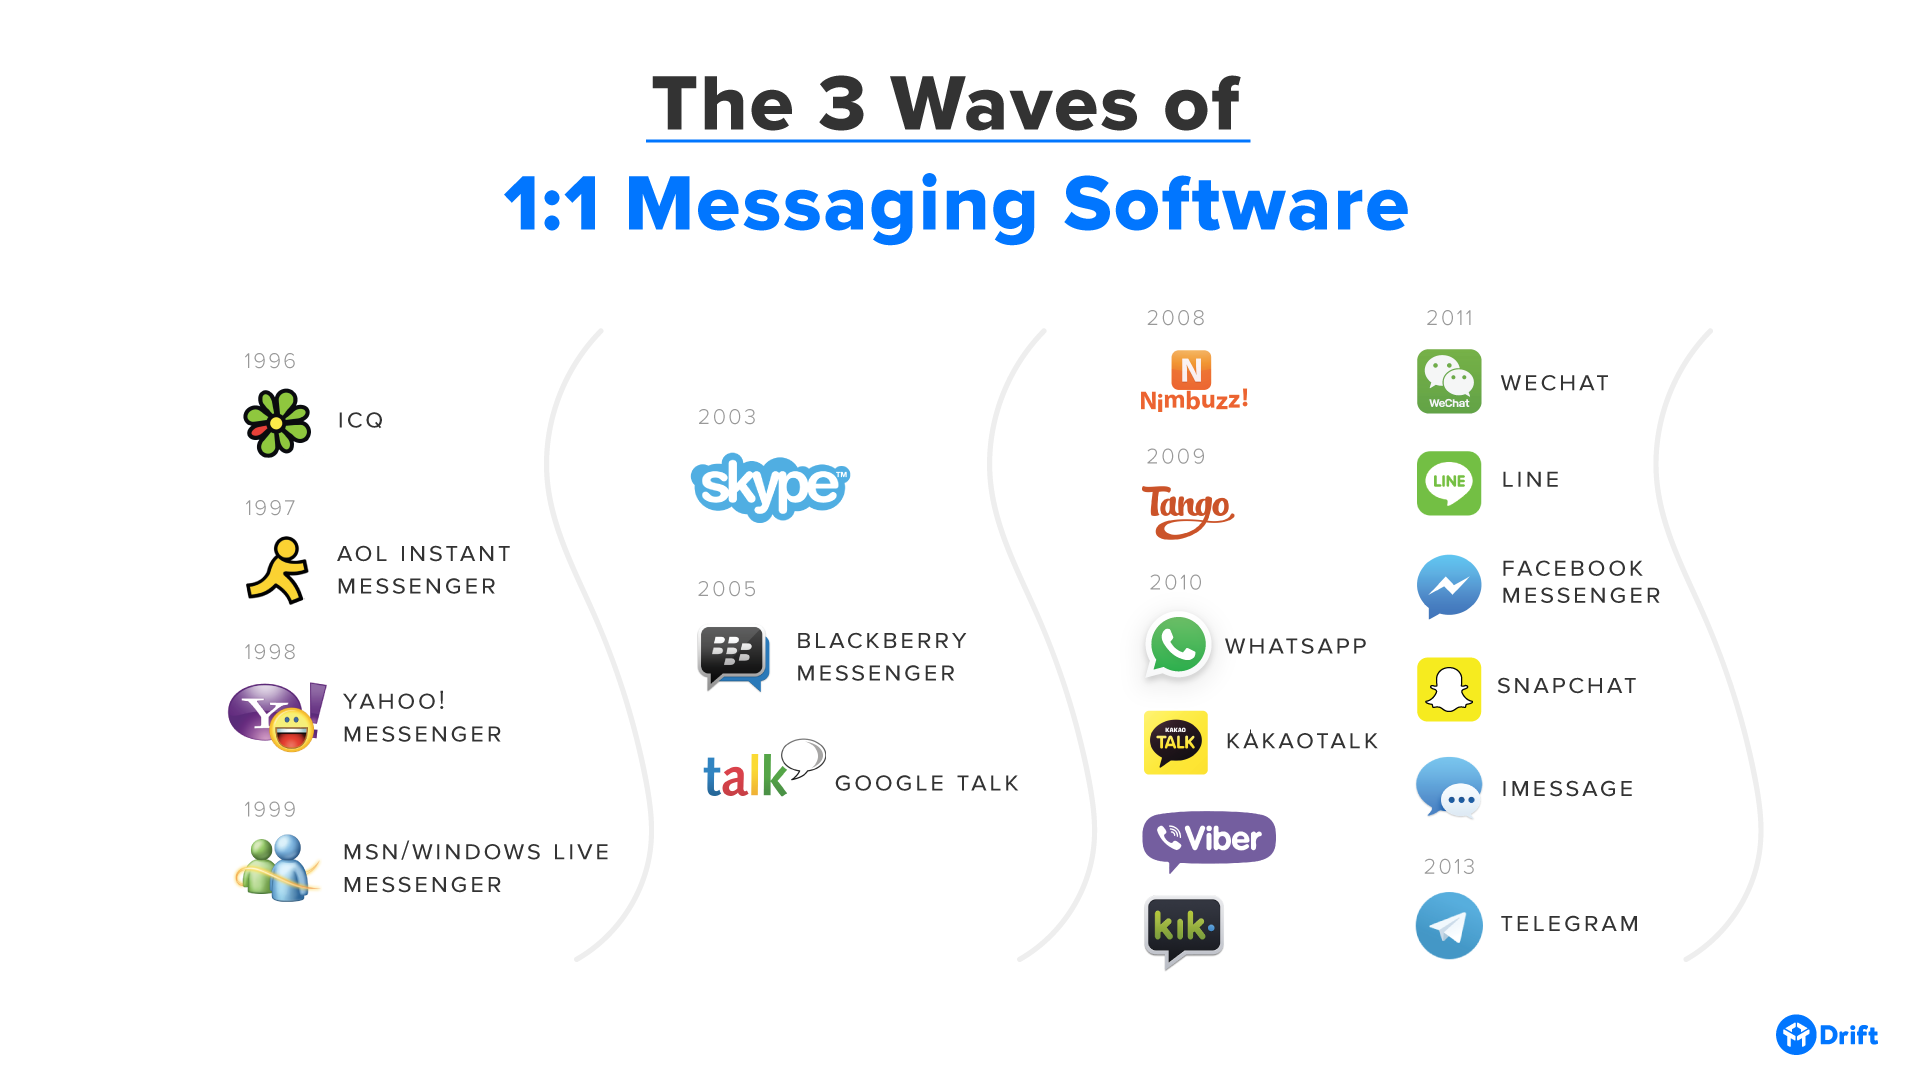 3-waves-messaging-software-logos.png